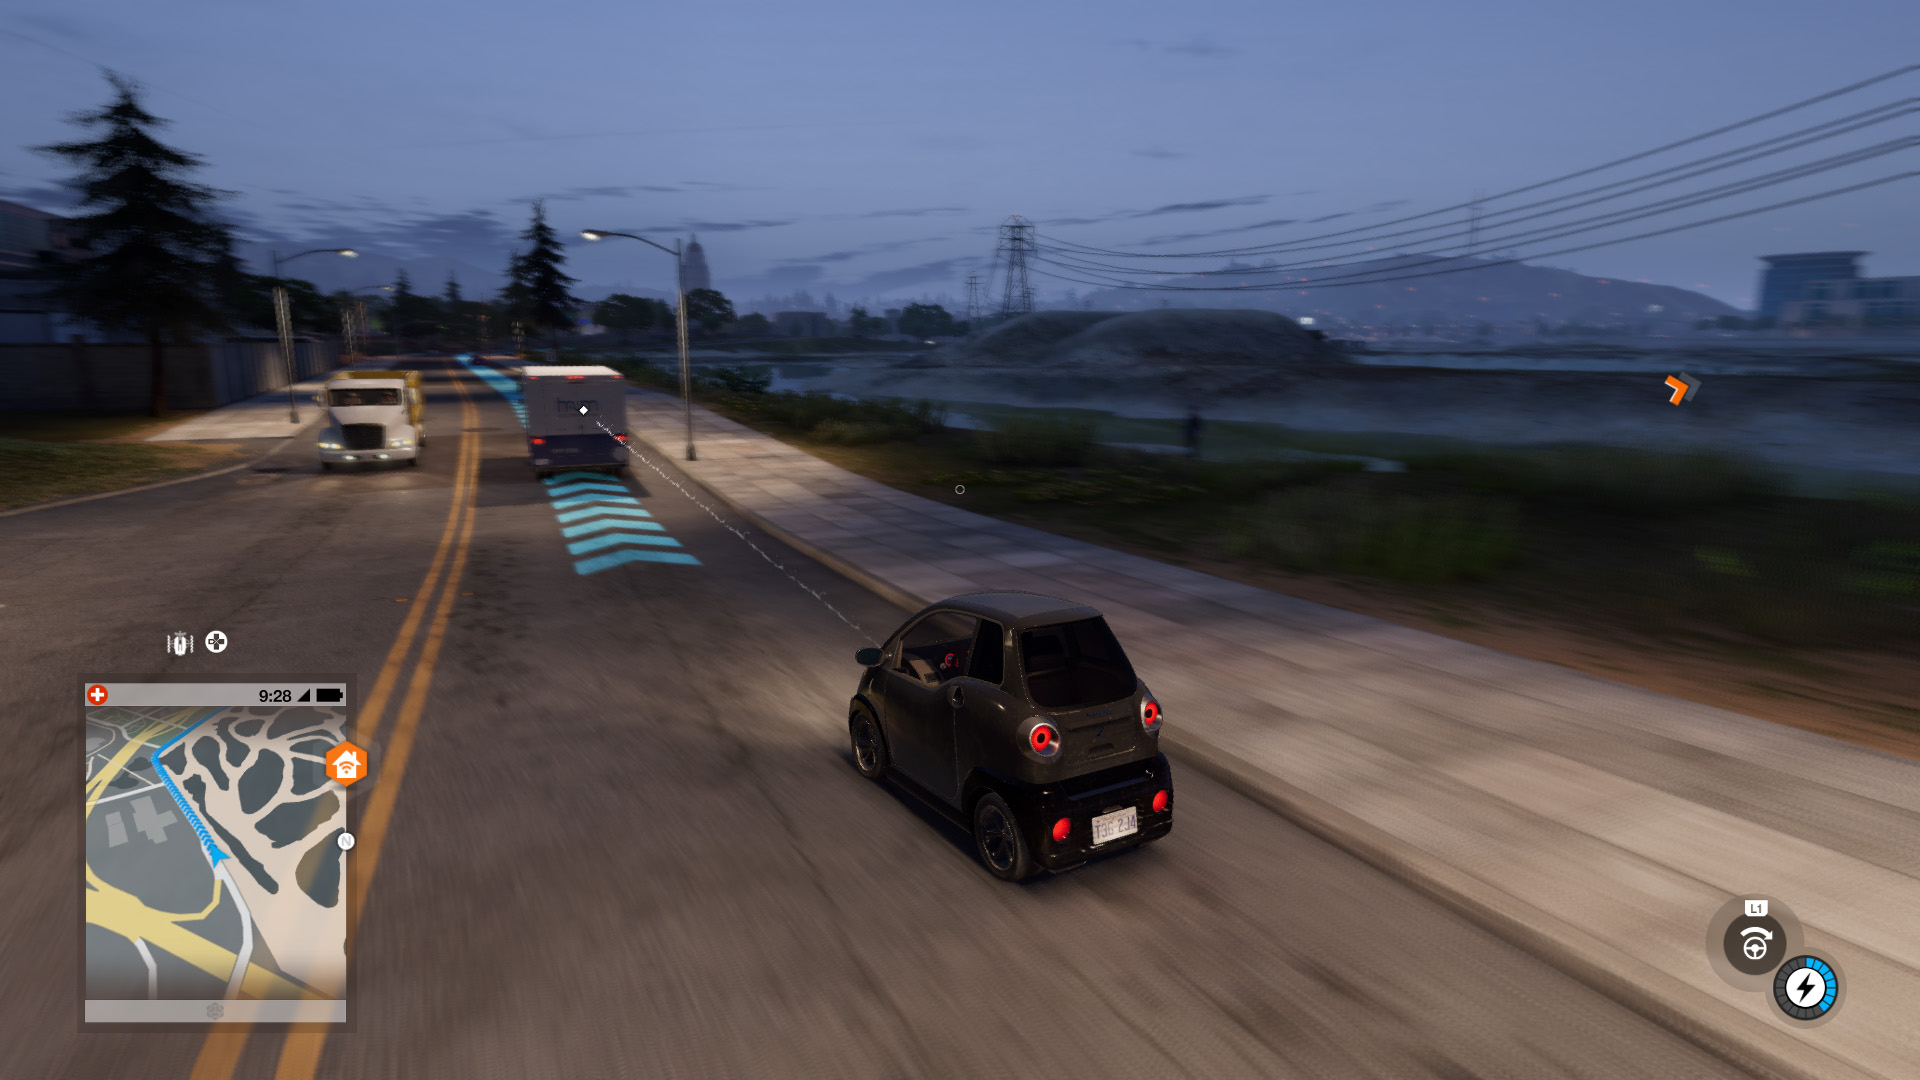 Can You Drive Cars In Watch Dogs